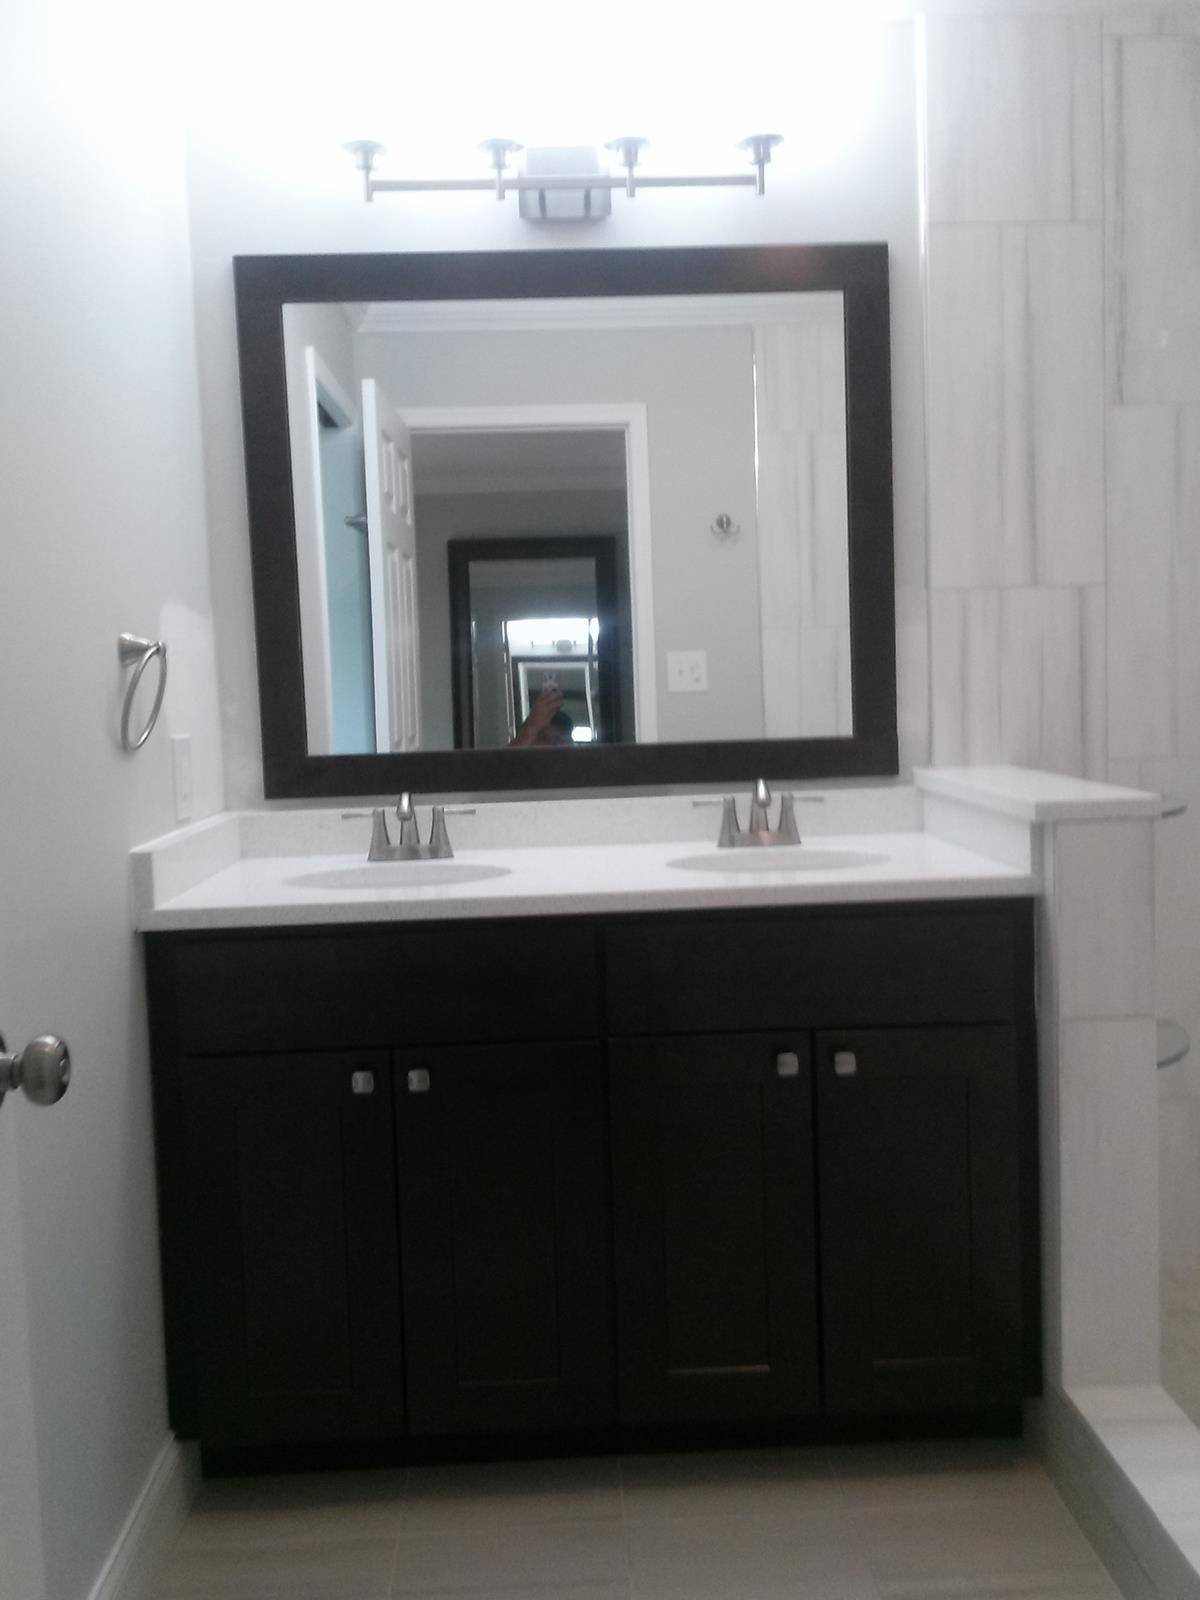 Bathroom Remodeling Towson master suite bath addition in towson, md - trademark construction